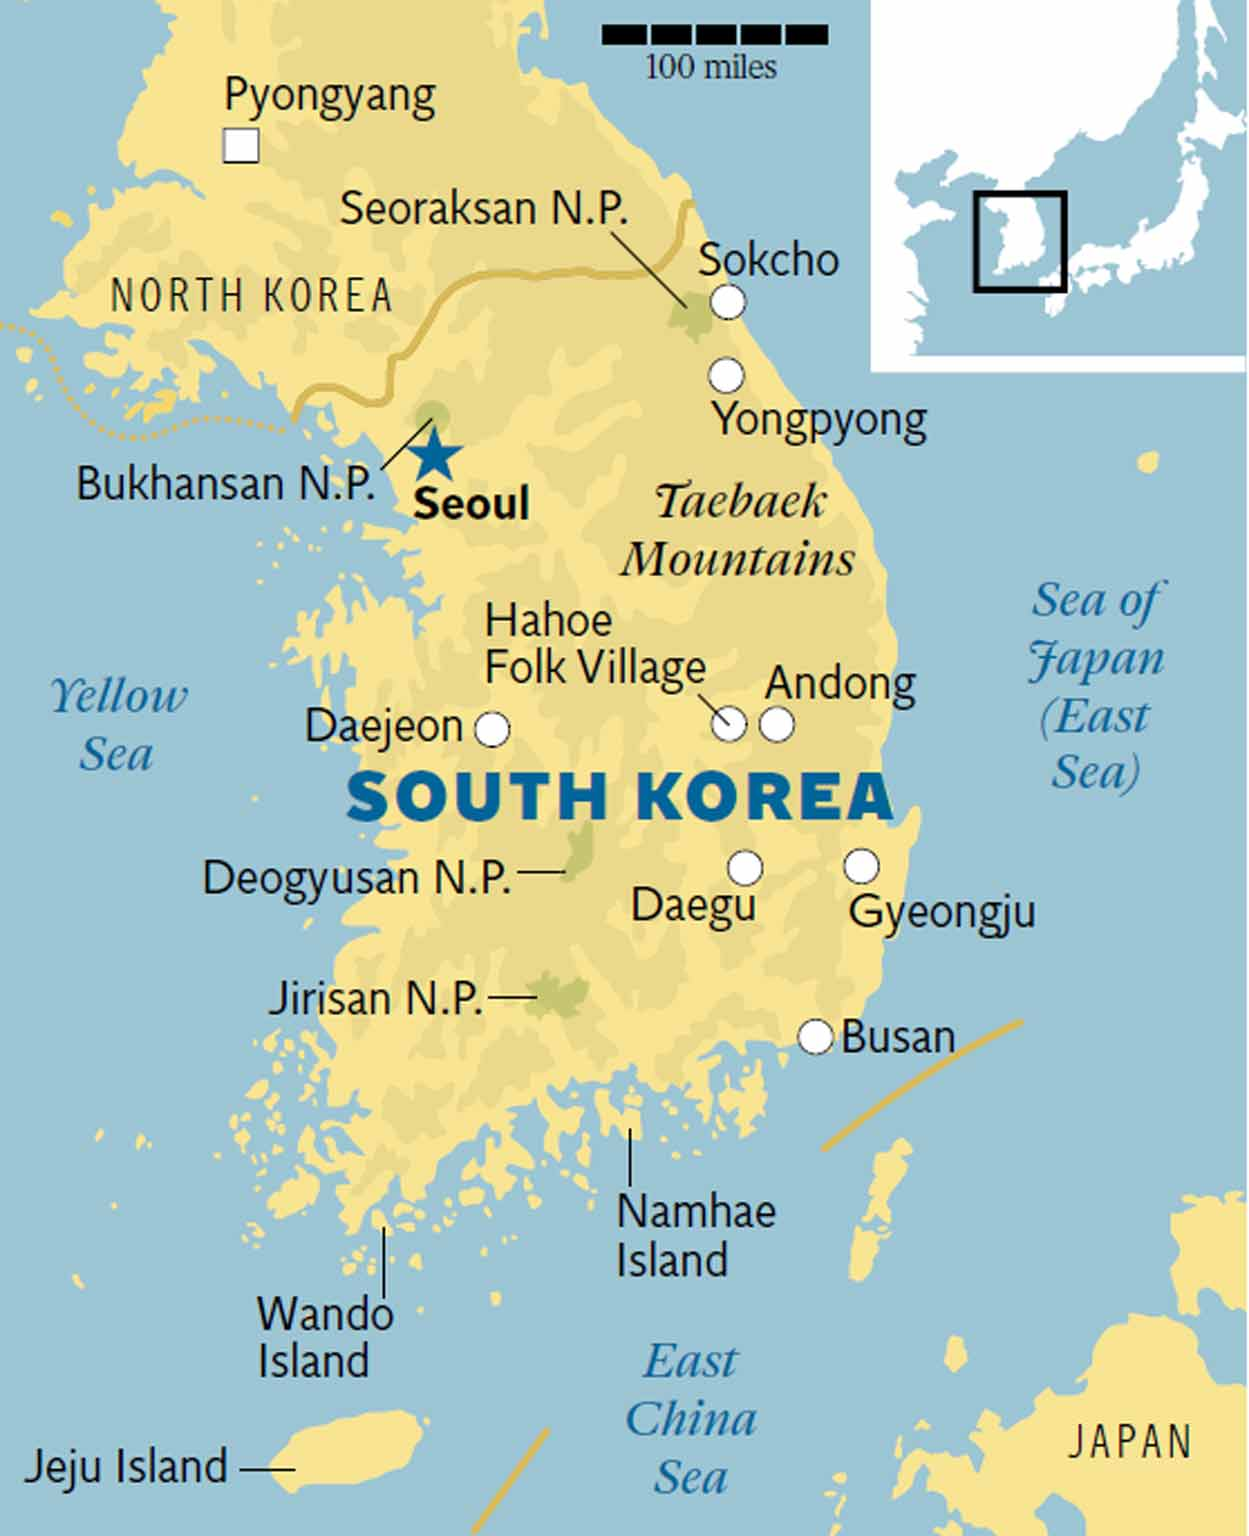 South Korea: From Seoul and Jeju to traditional villages | The ... on luxembourg mountains map, malaysia mountains map, cyprus mountains map, taiwan mountains map, hungary mountains map, north caucasus mountains map, sudan mountains map, tunisia mountains map, u.s. mountains map, sierra leone mountains map, finland mountains map, dominica mountains map, belize mountains map, bhutan mountains map, western us mountains map, aleutian islands mountains map, barbados mountains map, bangladesh mountains map, euphrates mountains map, liberia mountains map,